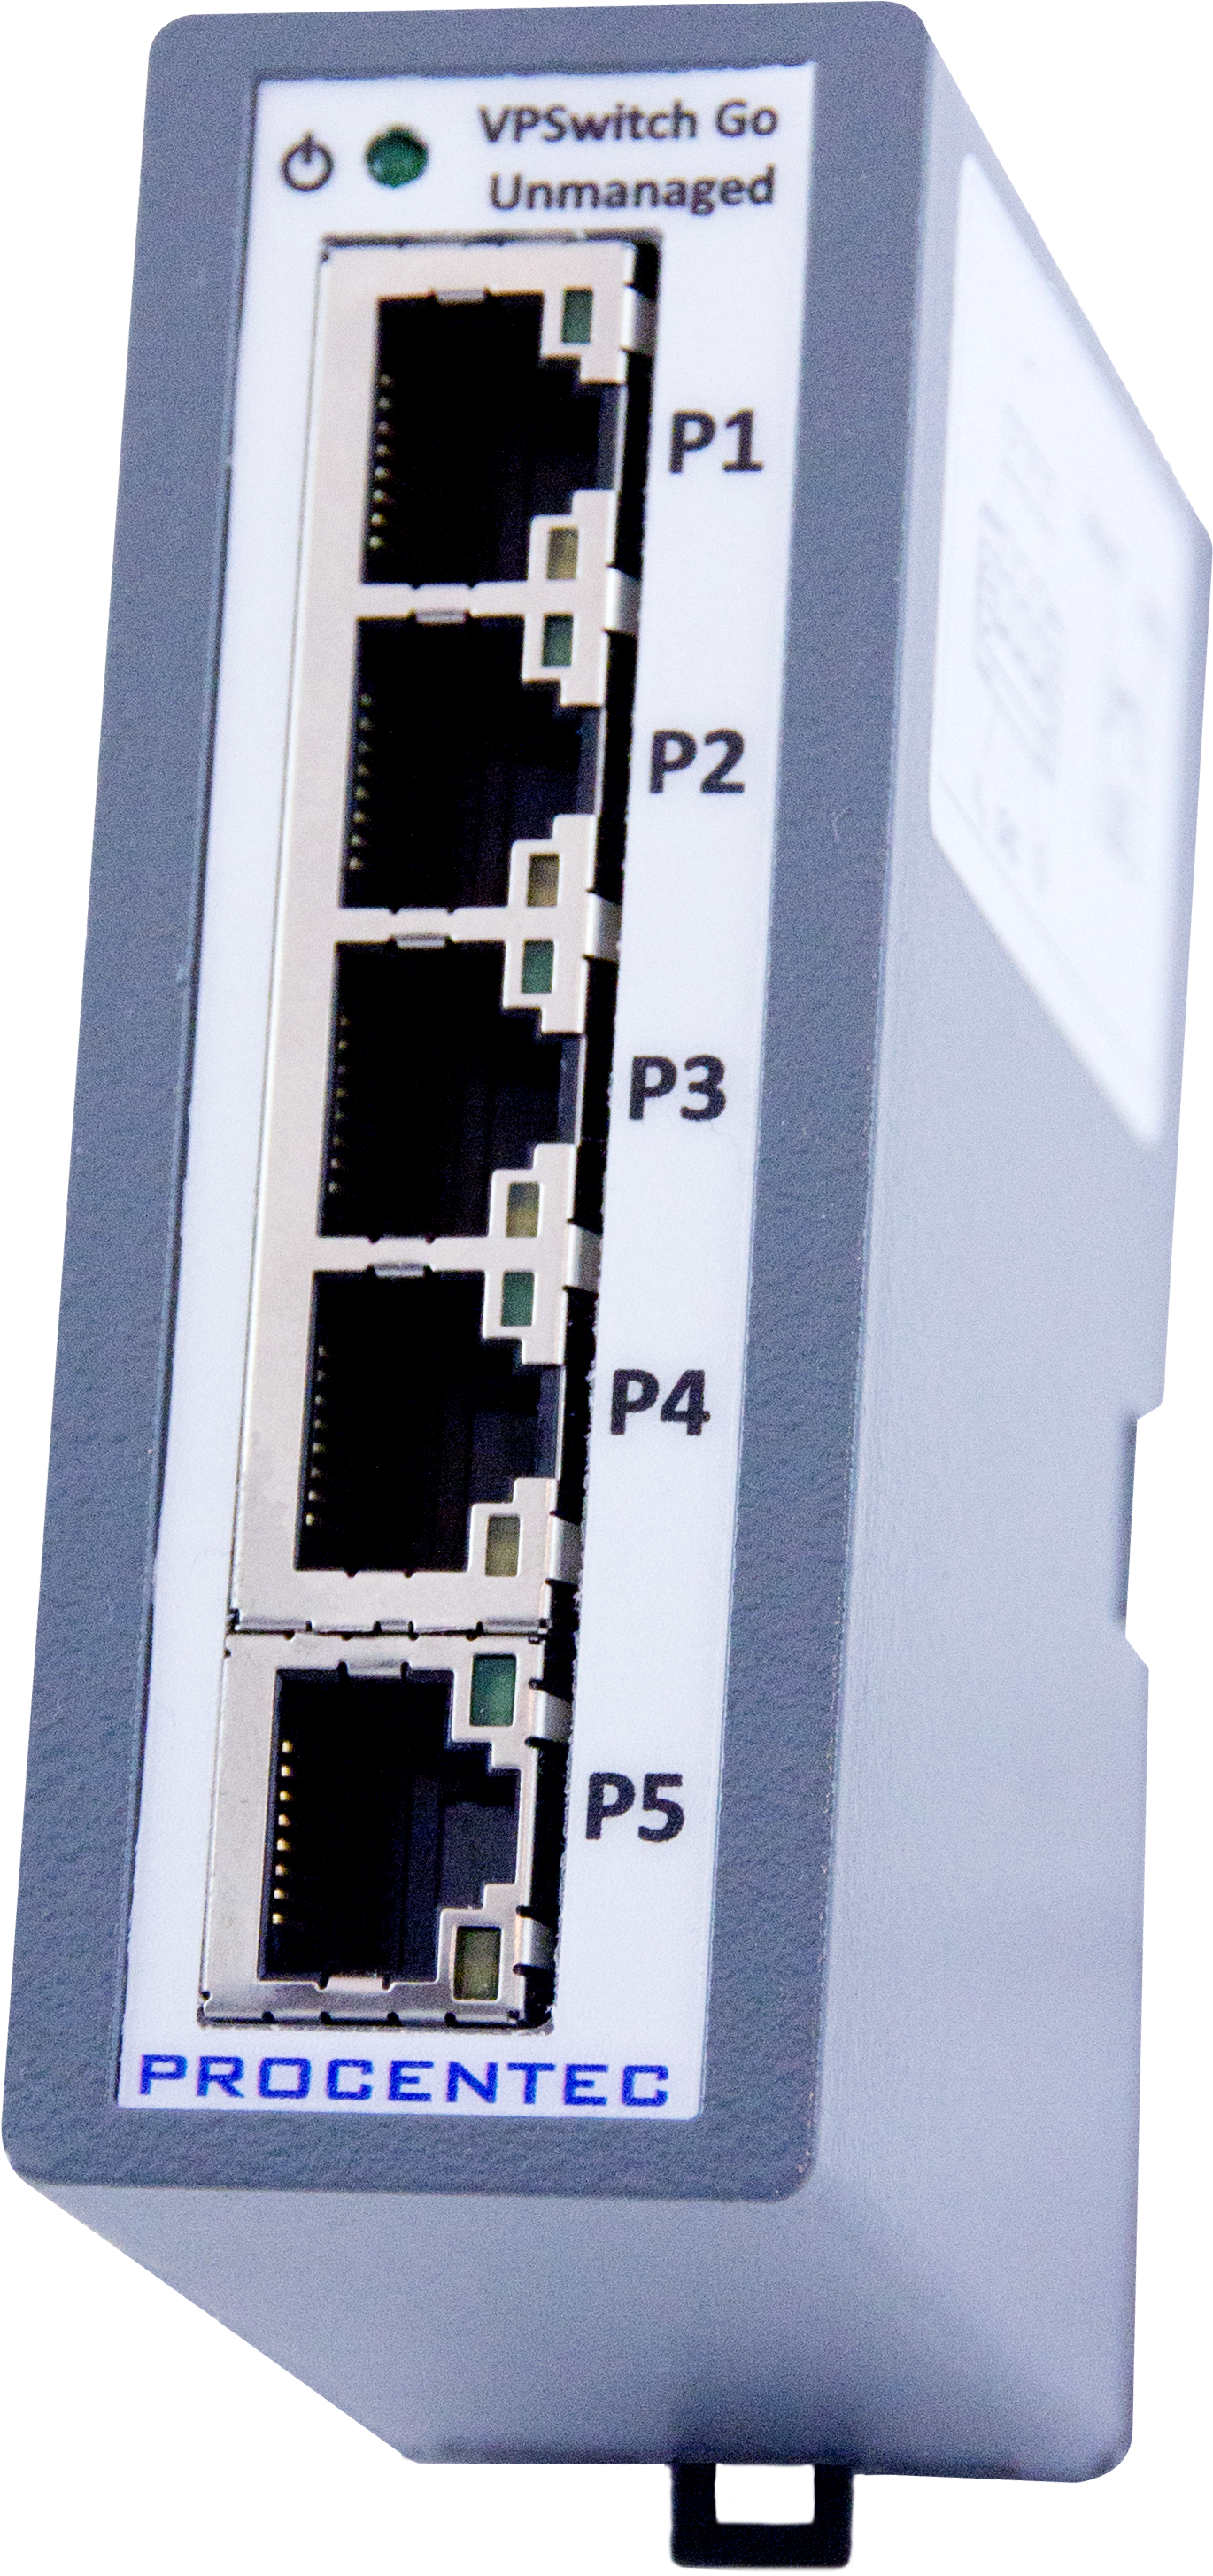 VPSwitch Go Unmanaged 5TX - visual 1